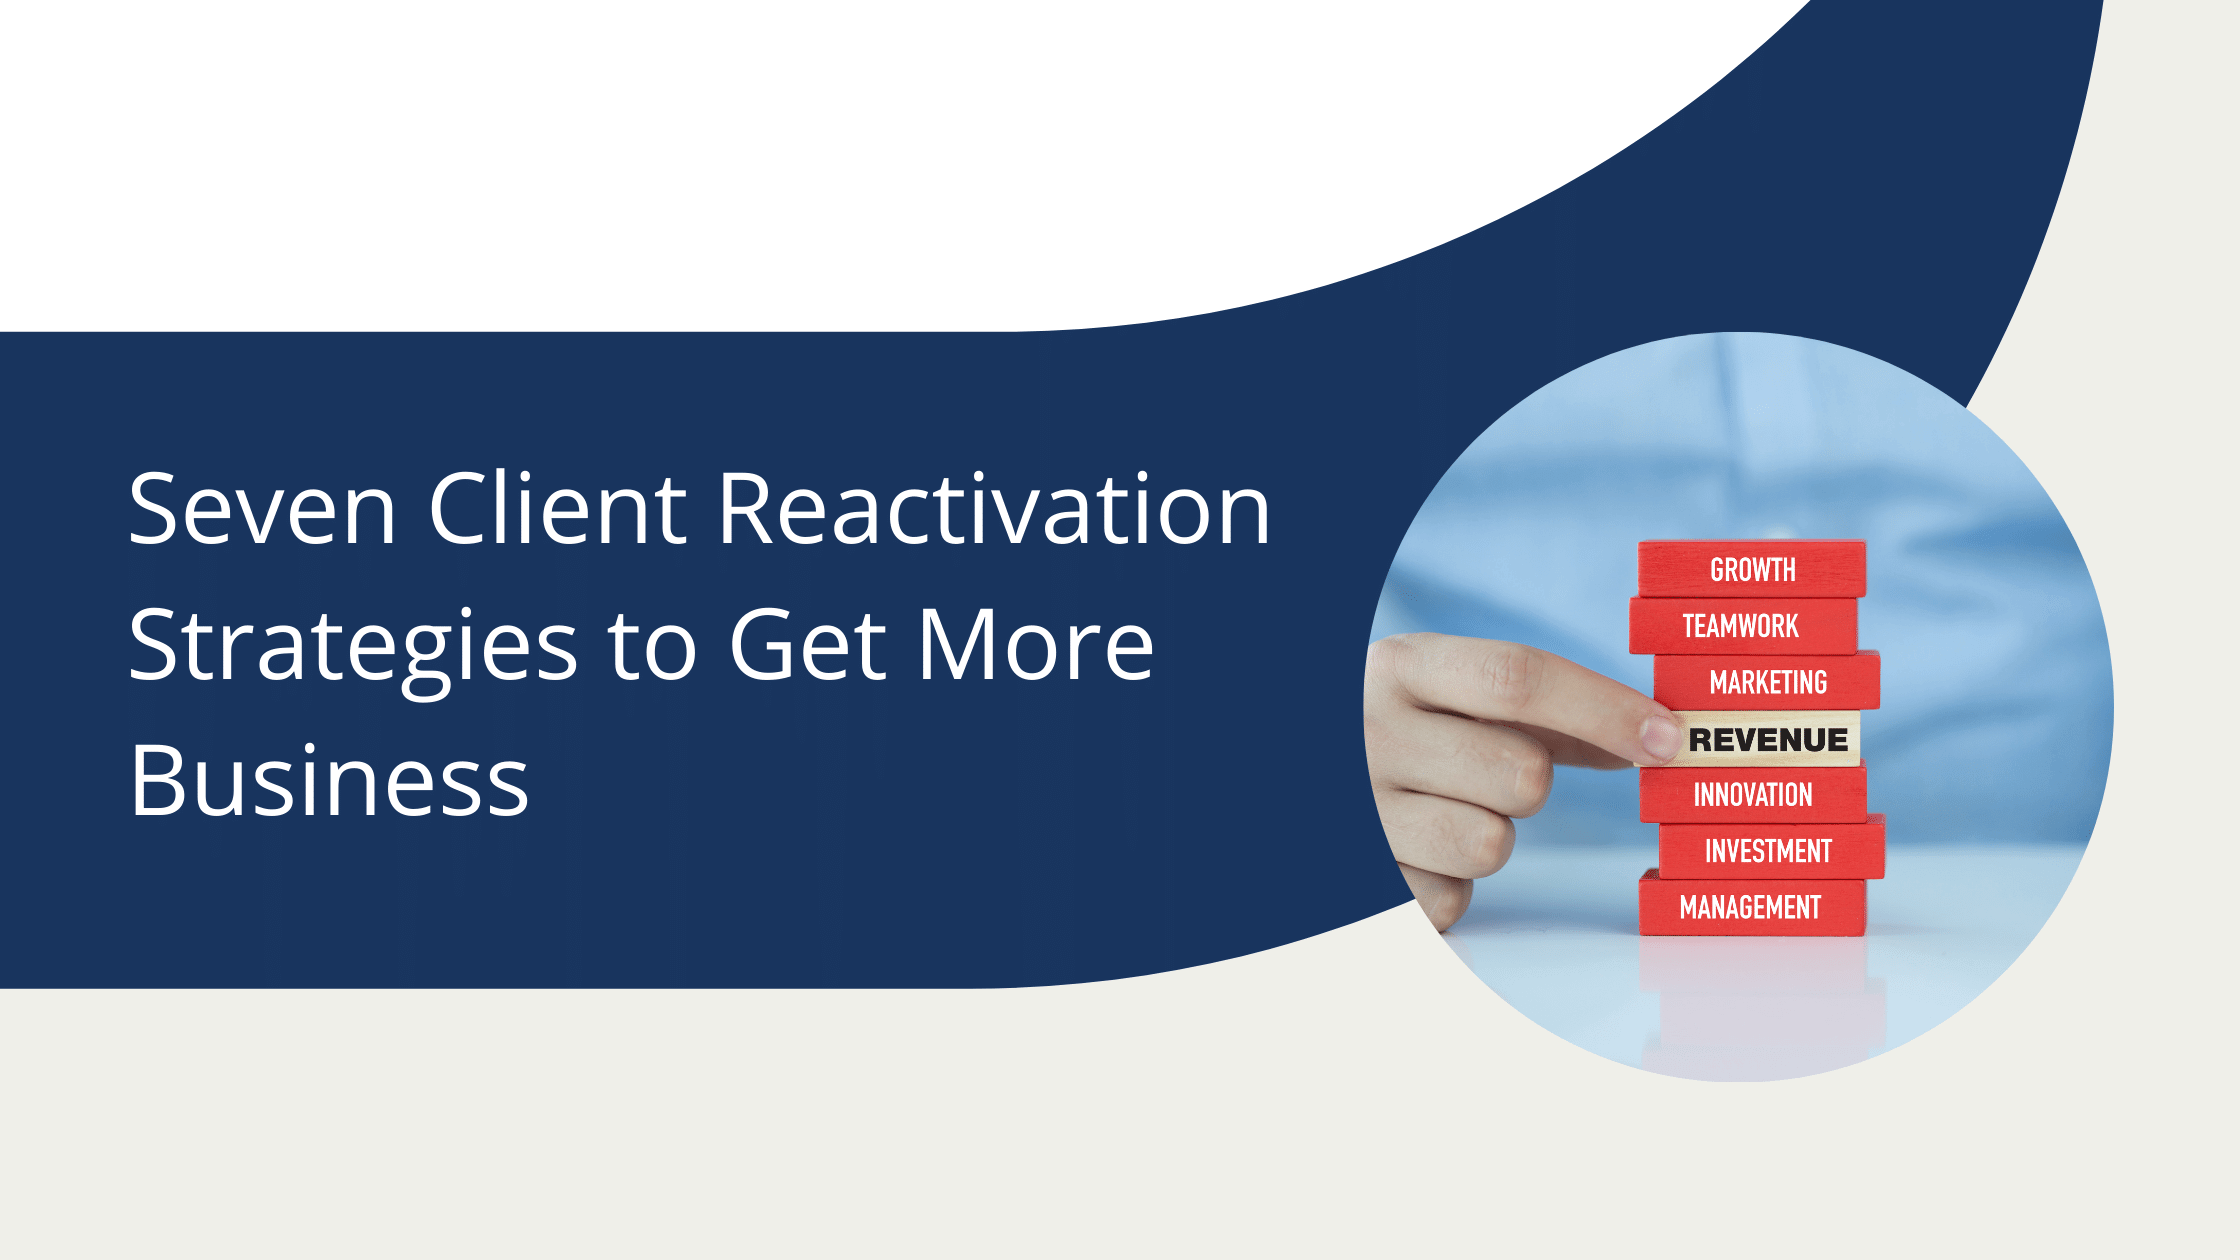 seven client reactivation strategies